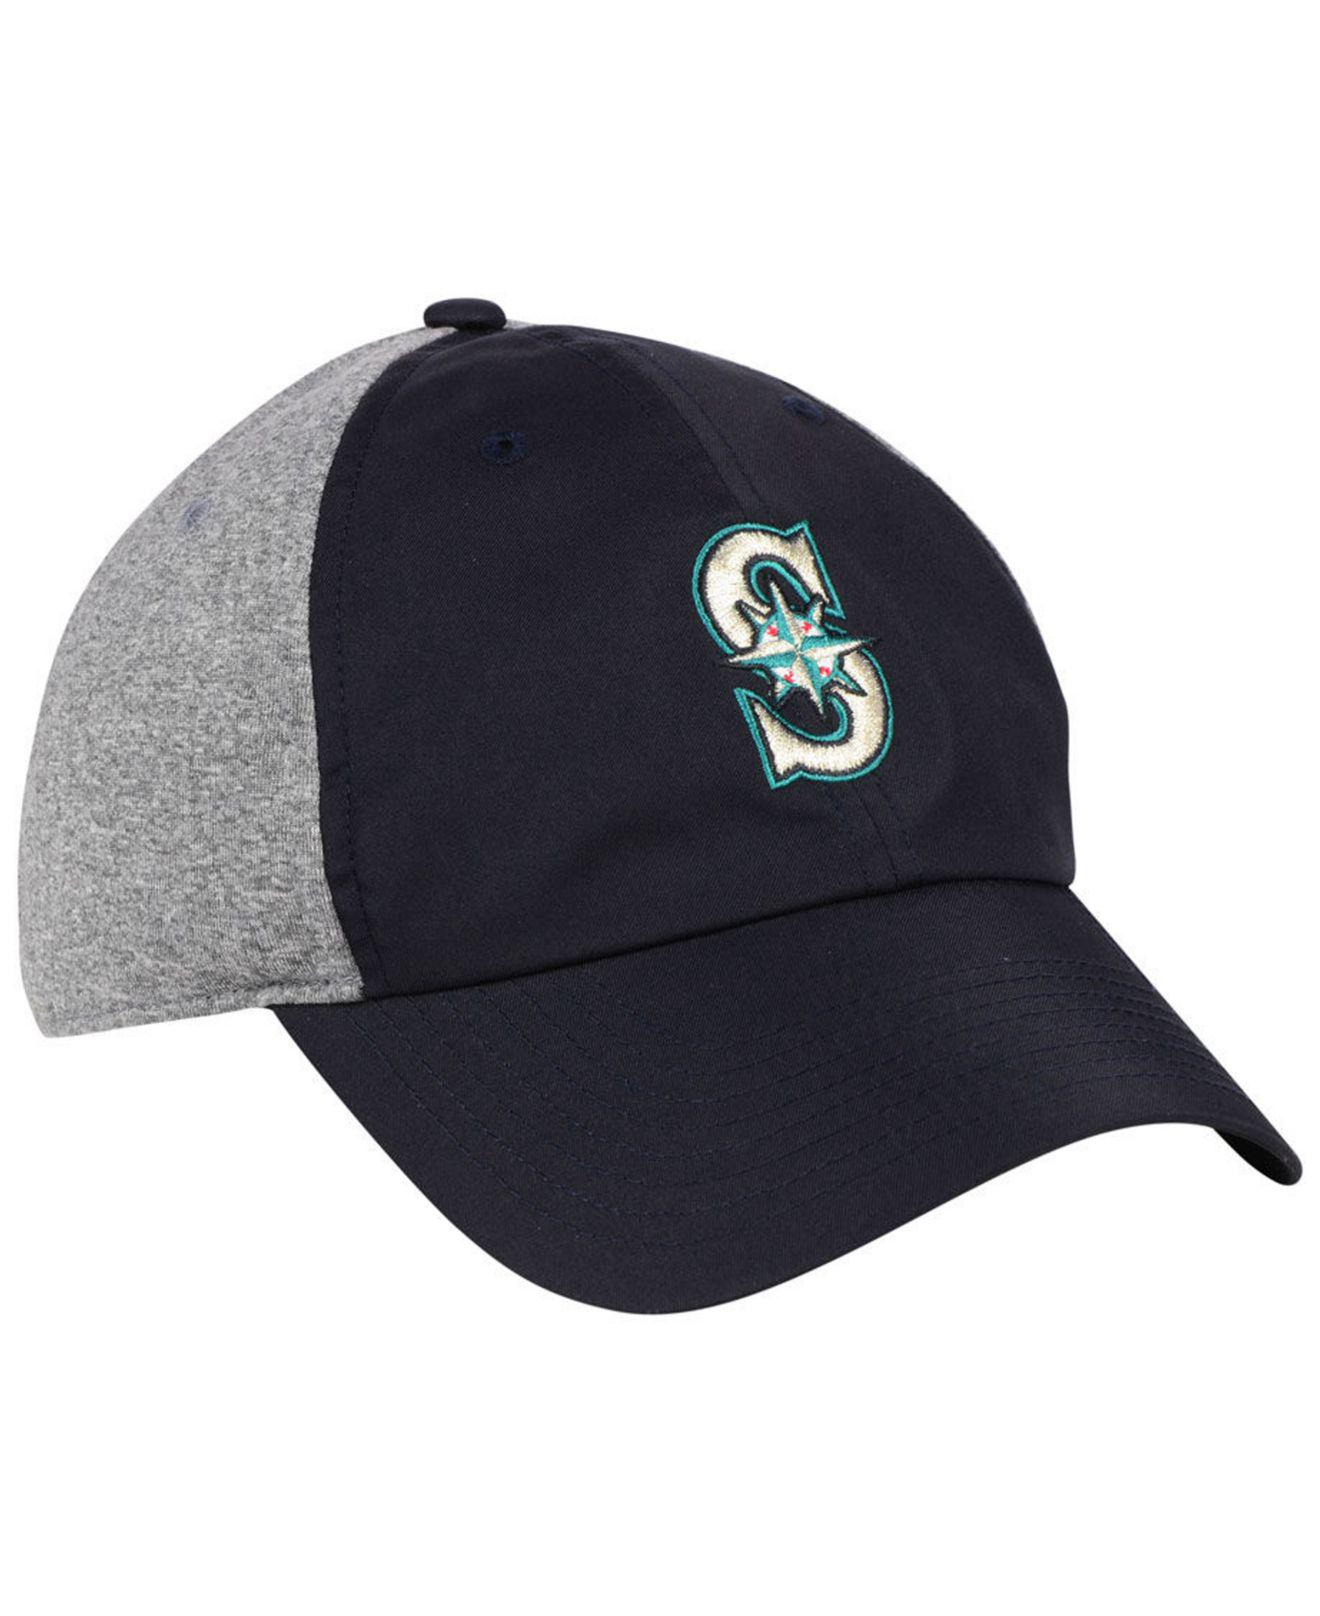 check out 6ddb7 b16b8 ... coupon code for nike blue seattle mariners new day legend cap for men  lyst. view